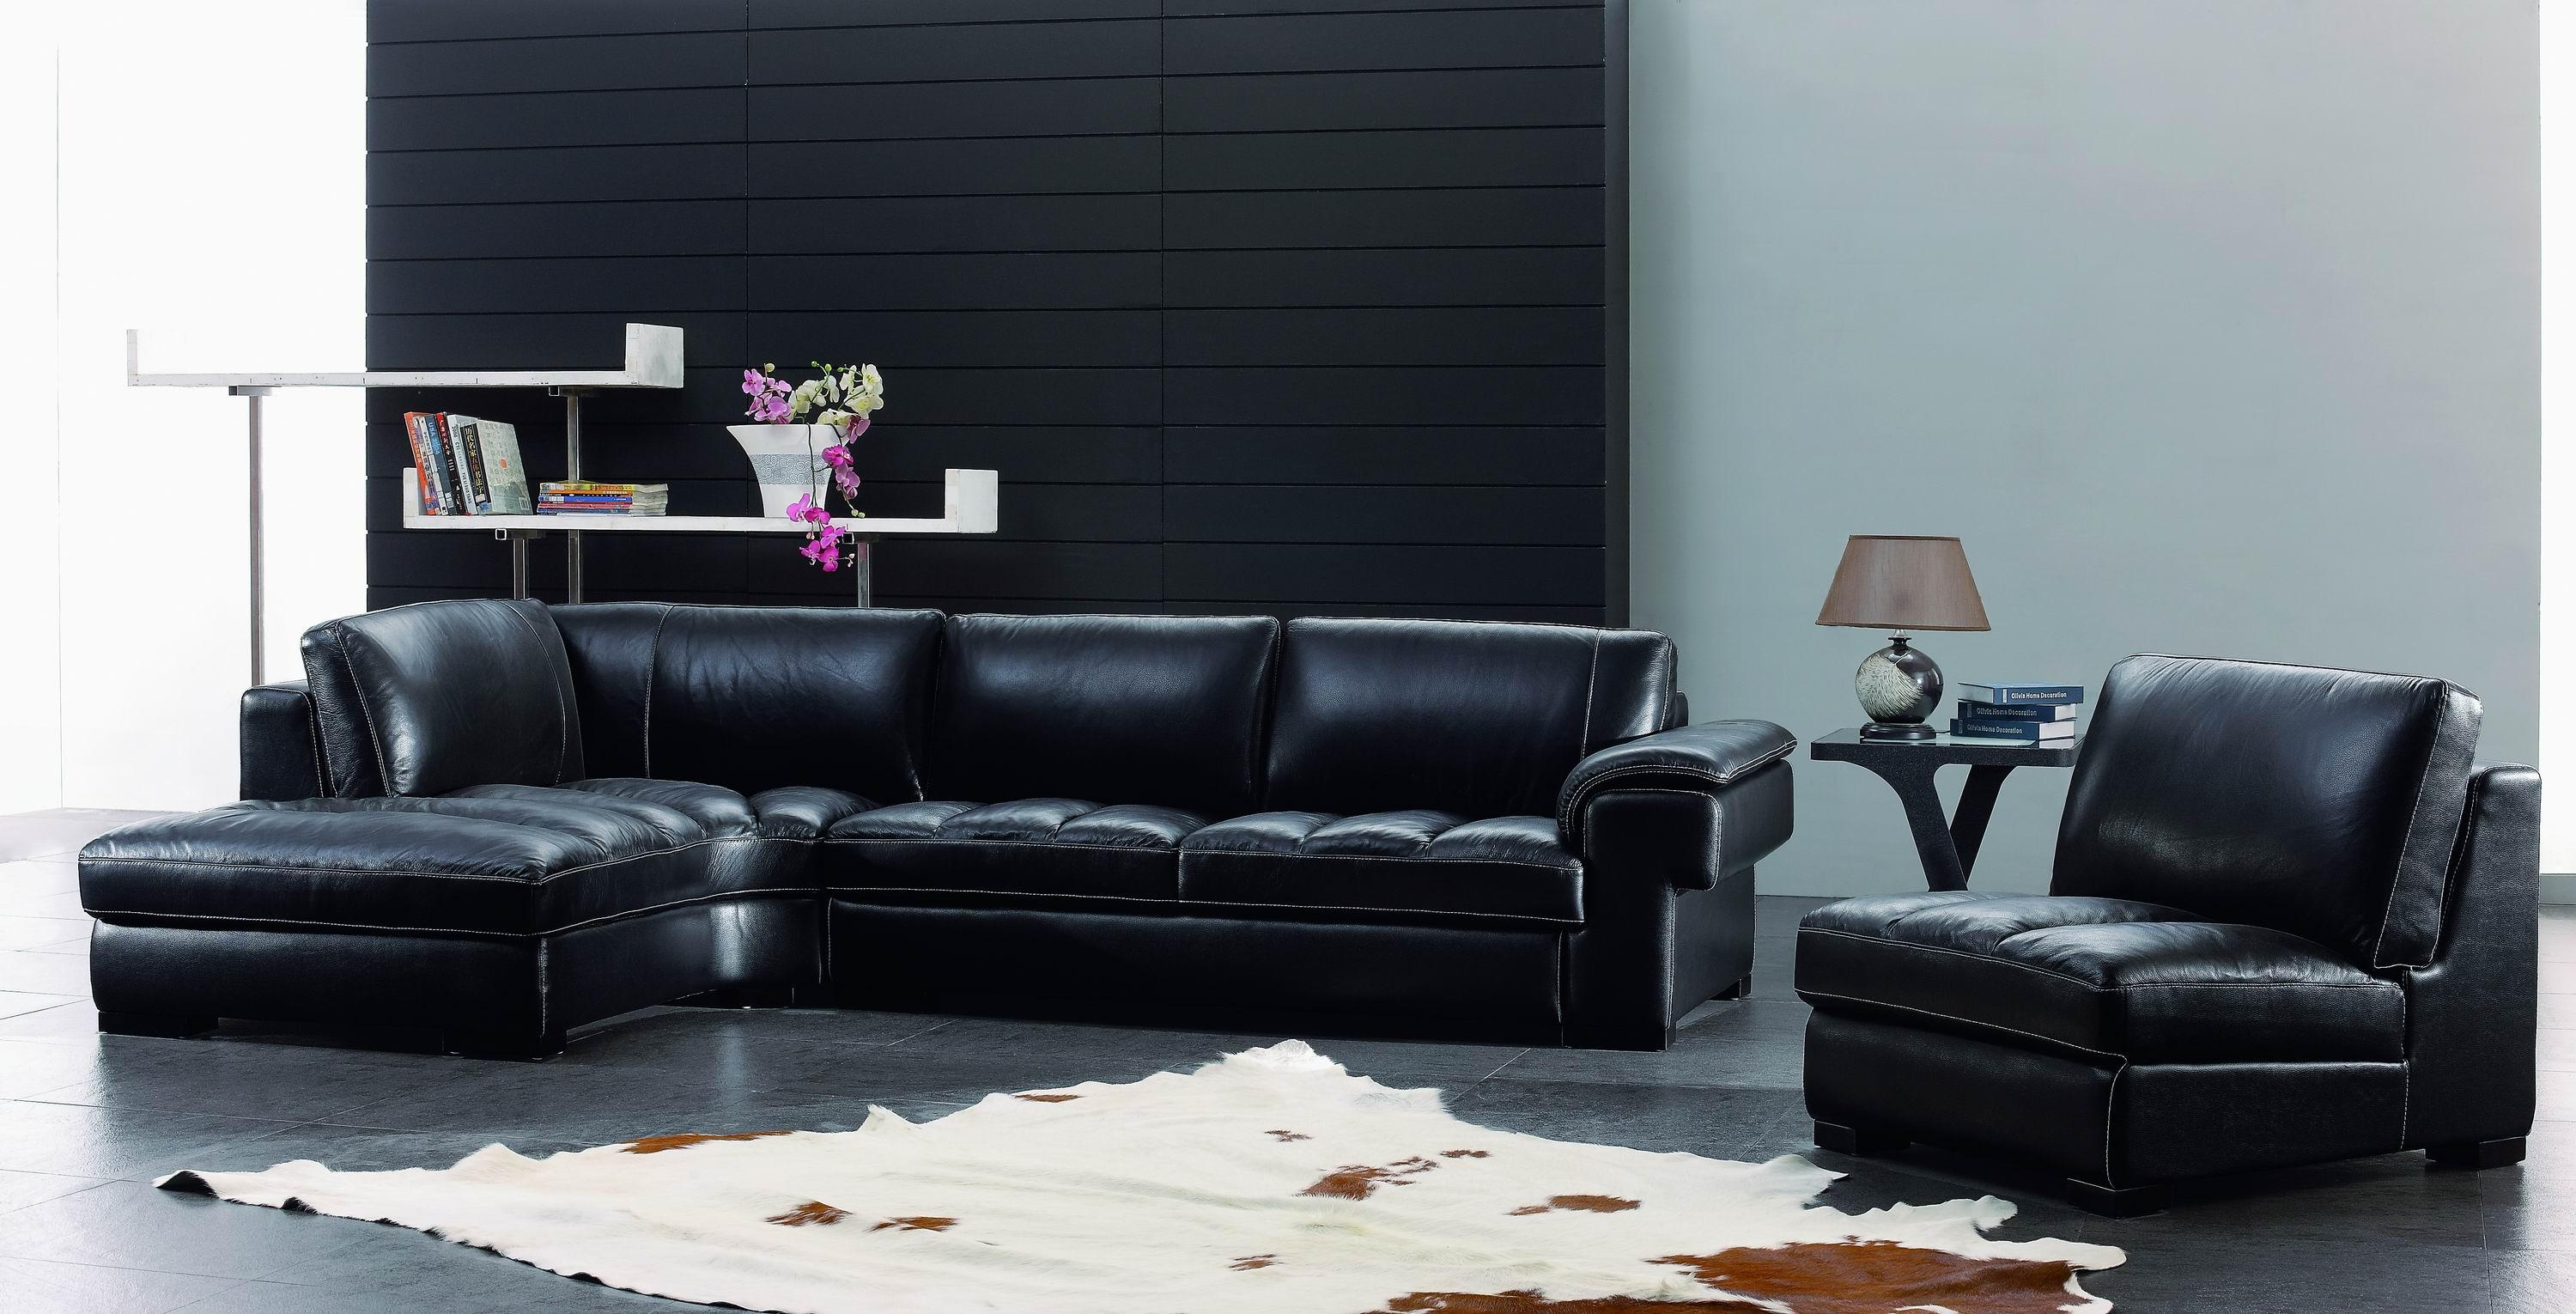 cheap table room livings sets black furniture set leather modern gallery asl living